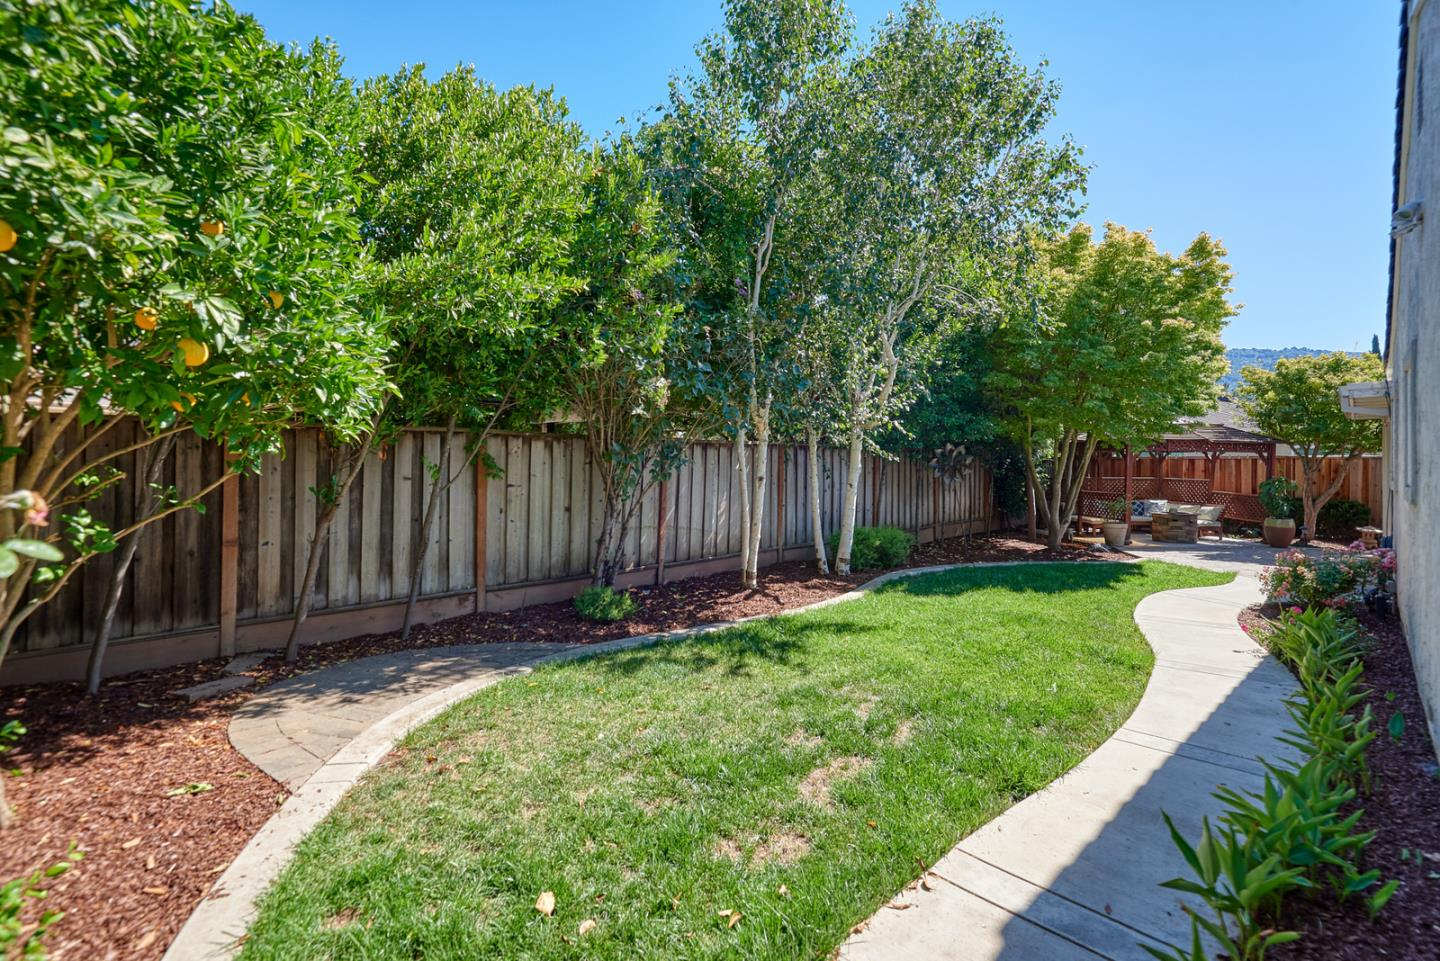 Christmas Hill Park Gilroy Ca 95020.Mls 81760425 788 000 Www Redhouseluxuryhomes Com 900